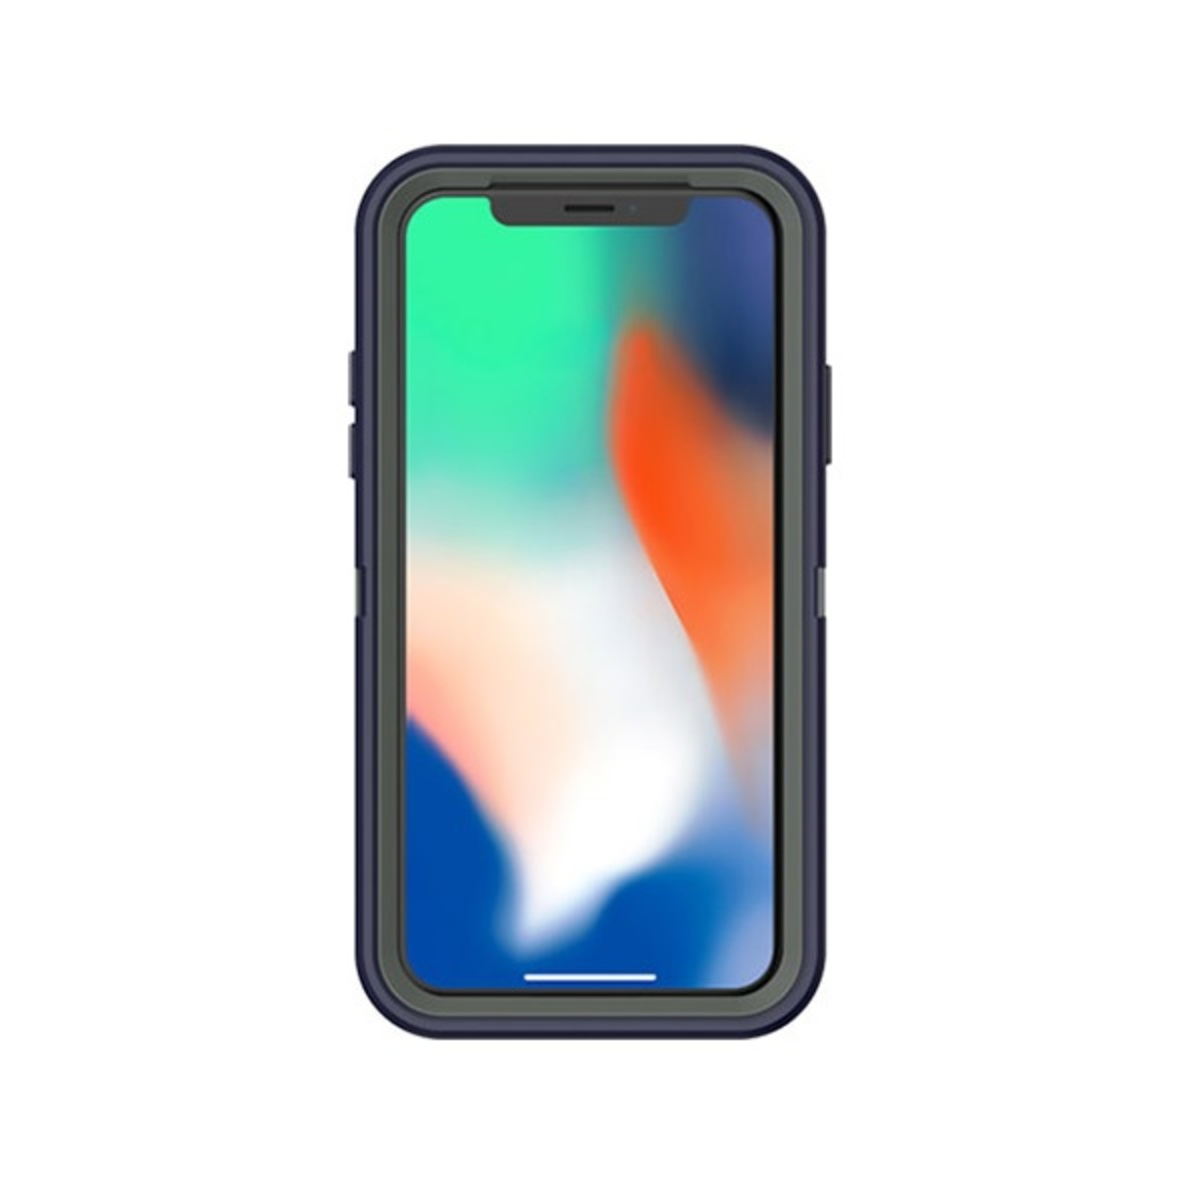 DEFENDER RUGGED PROTECTION CASE FOR IPHONE X / XS - STORMY PEAKS( 77-57027 )